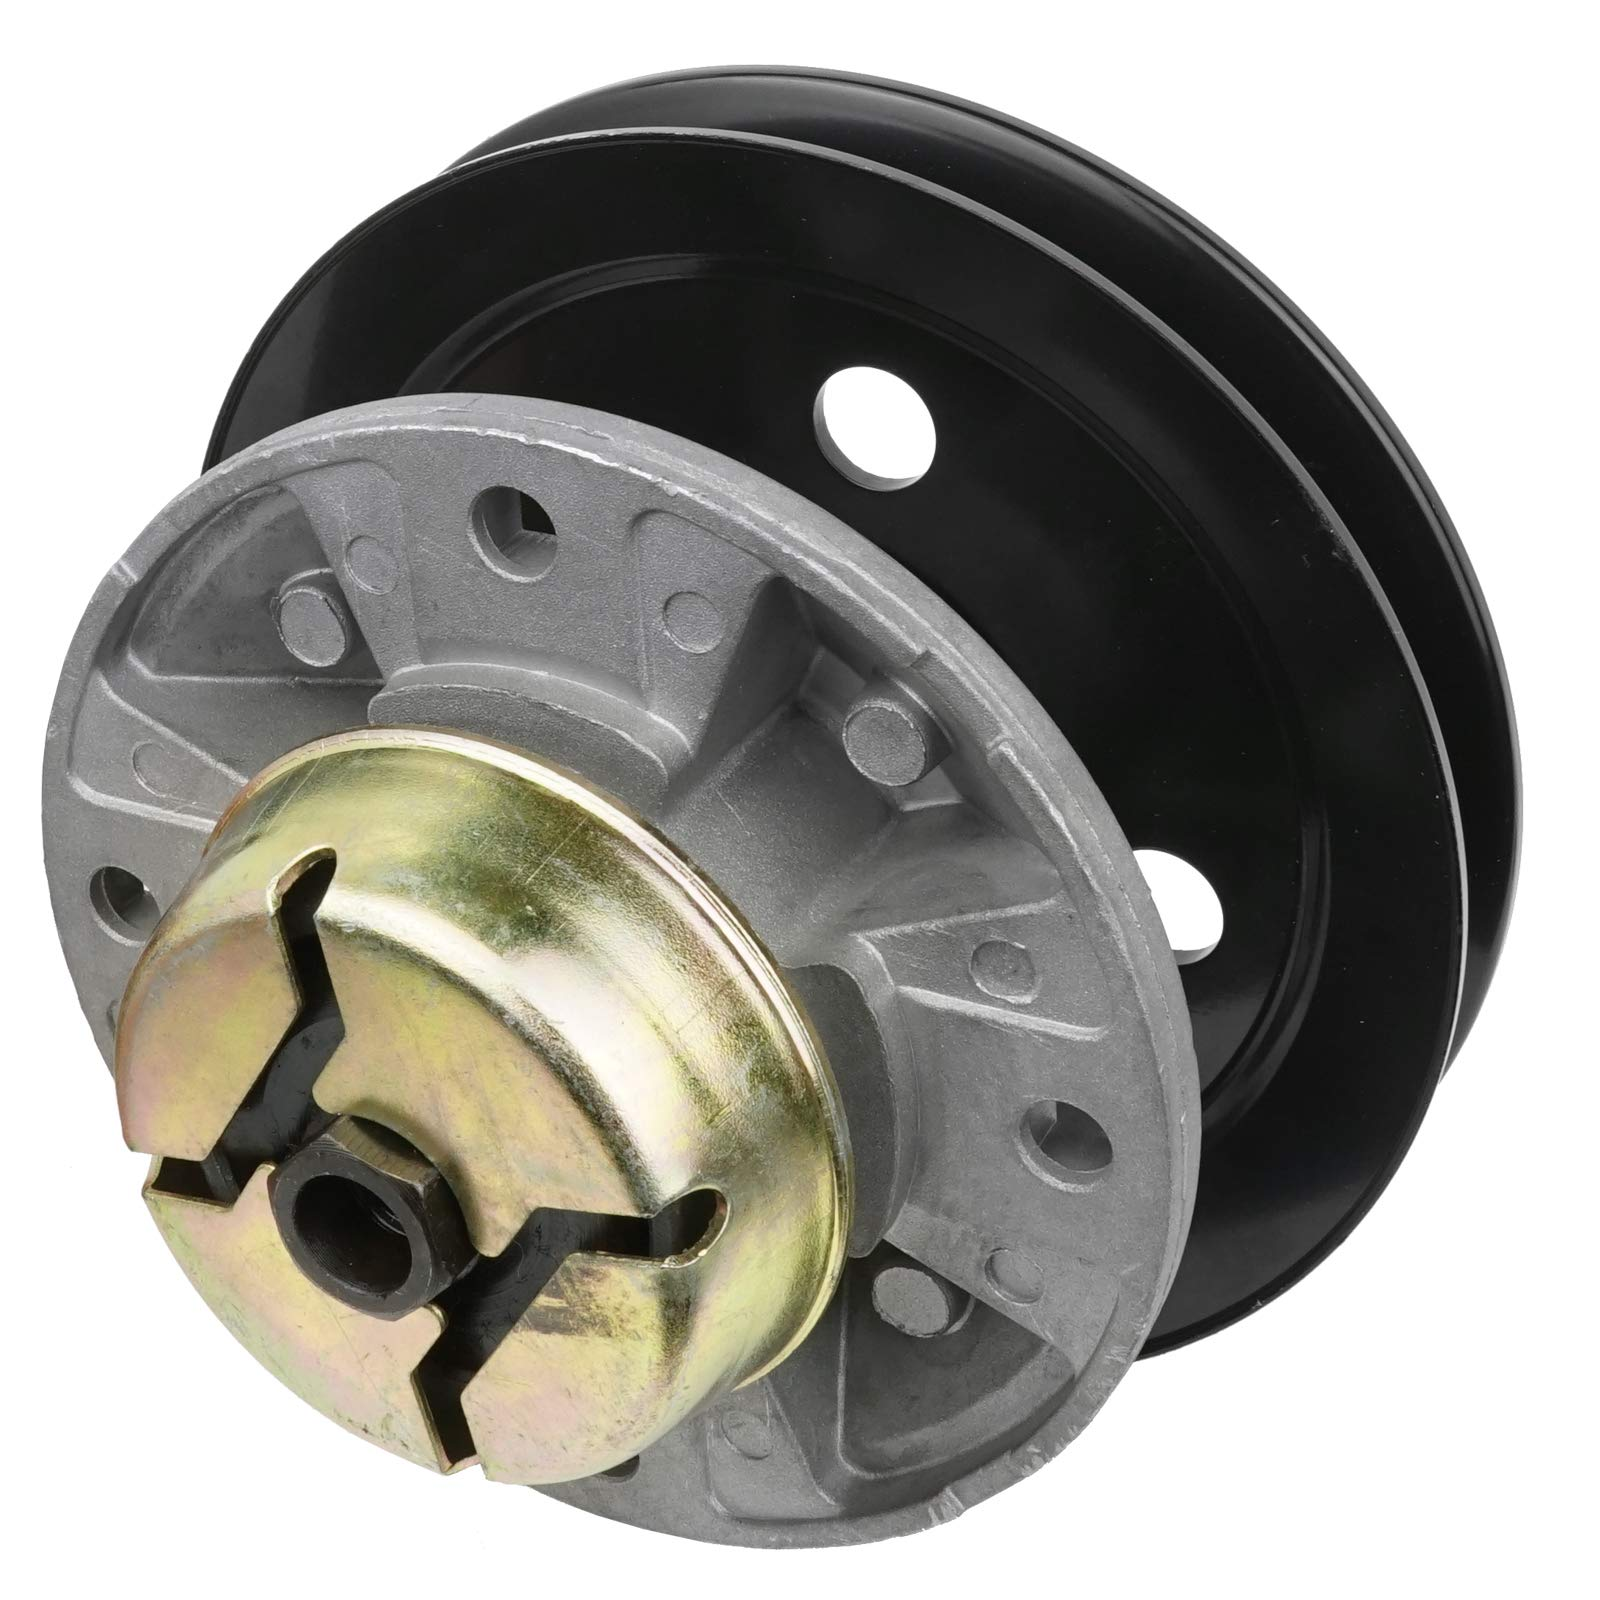 CALTRIC AM121342 AM121229 SPINDLE ASSEMBLY FITS John Deere LX277 LX279 LX288 GT225